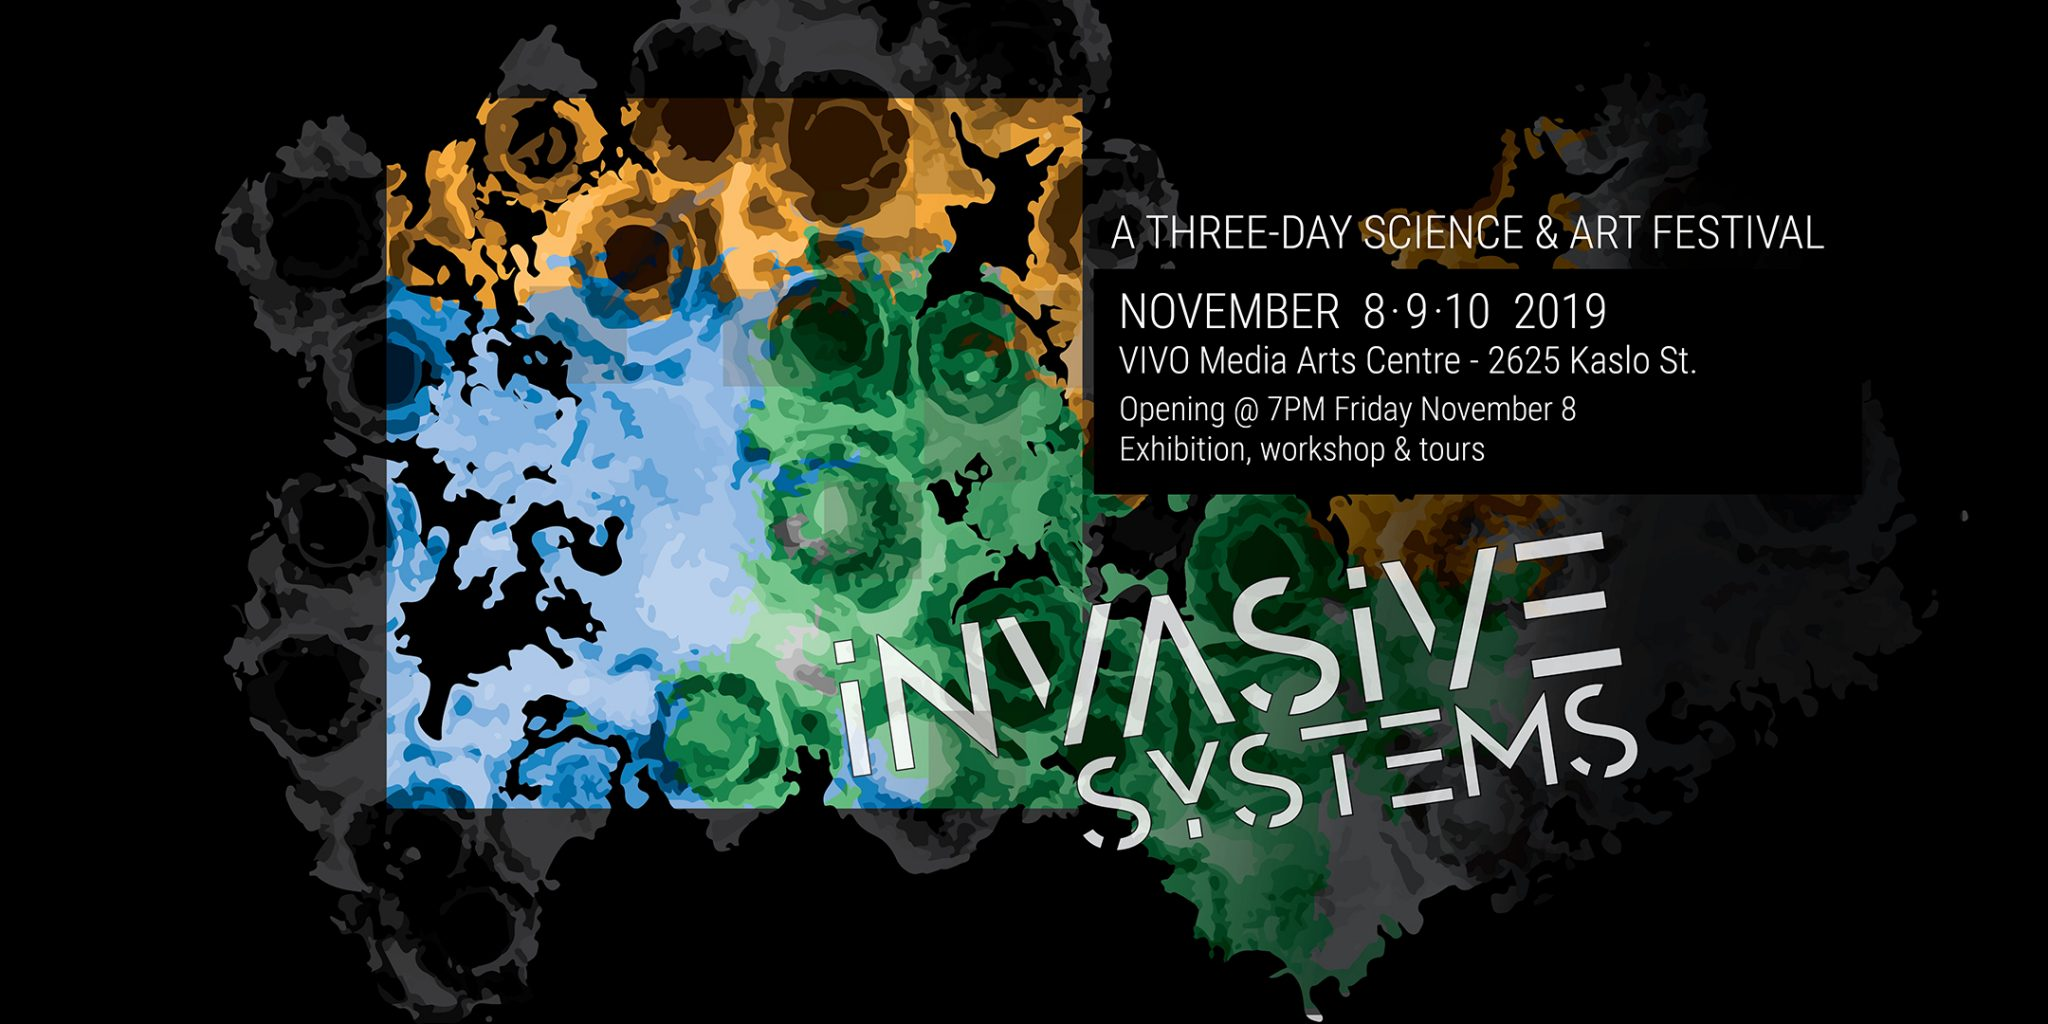 Collisions Festival: Invasive Systems